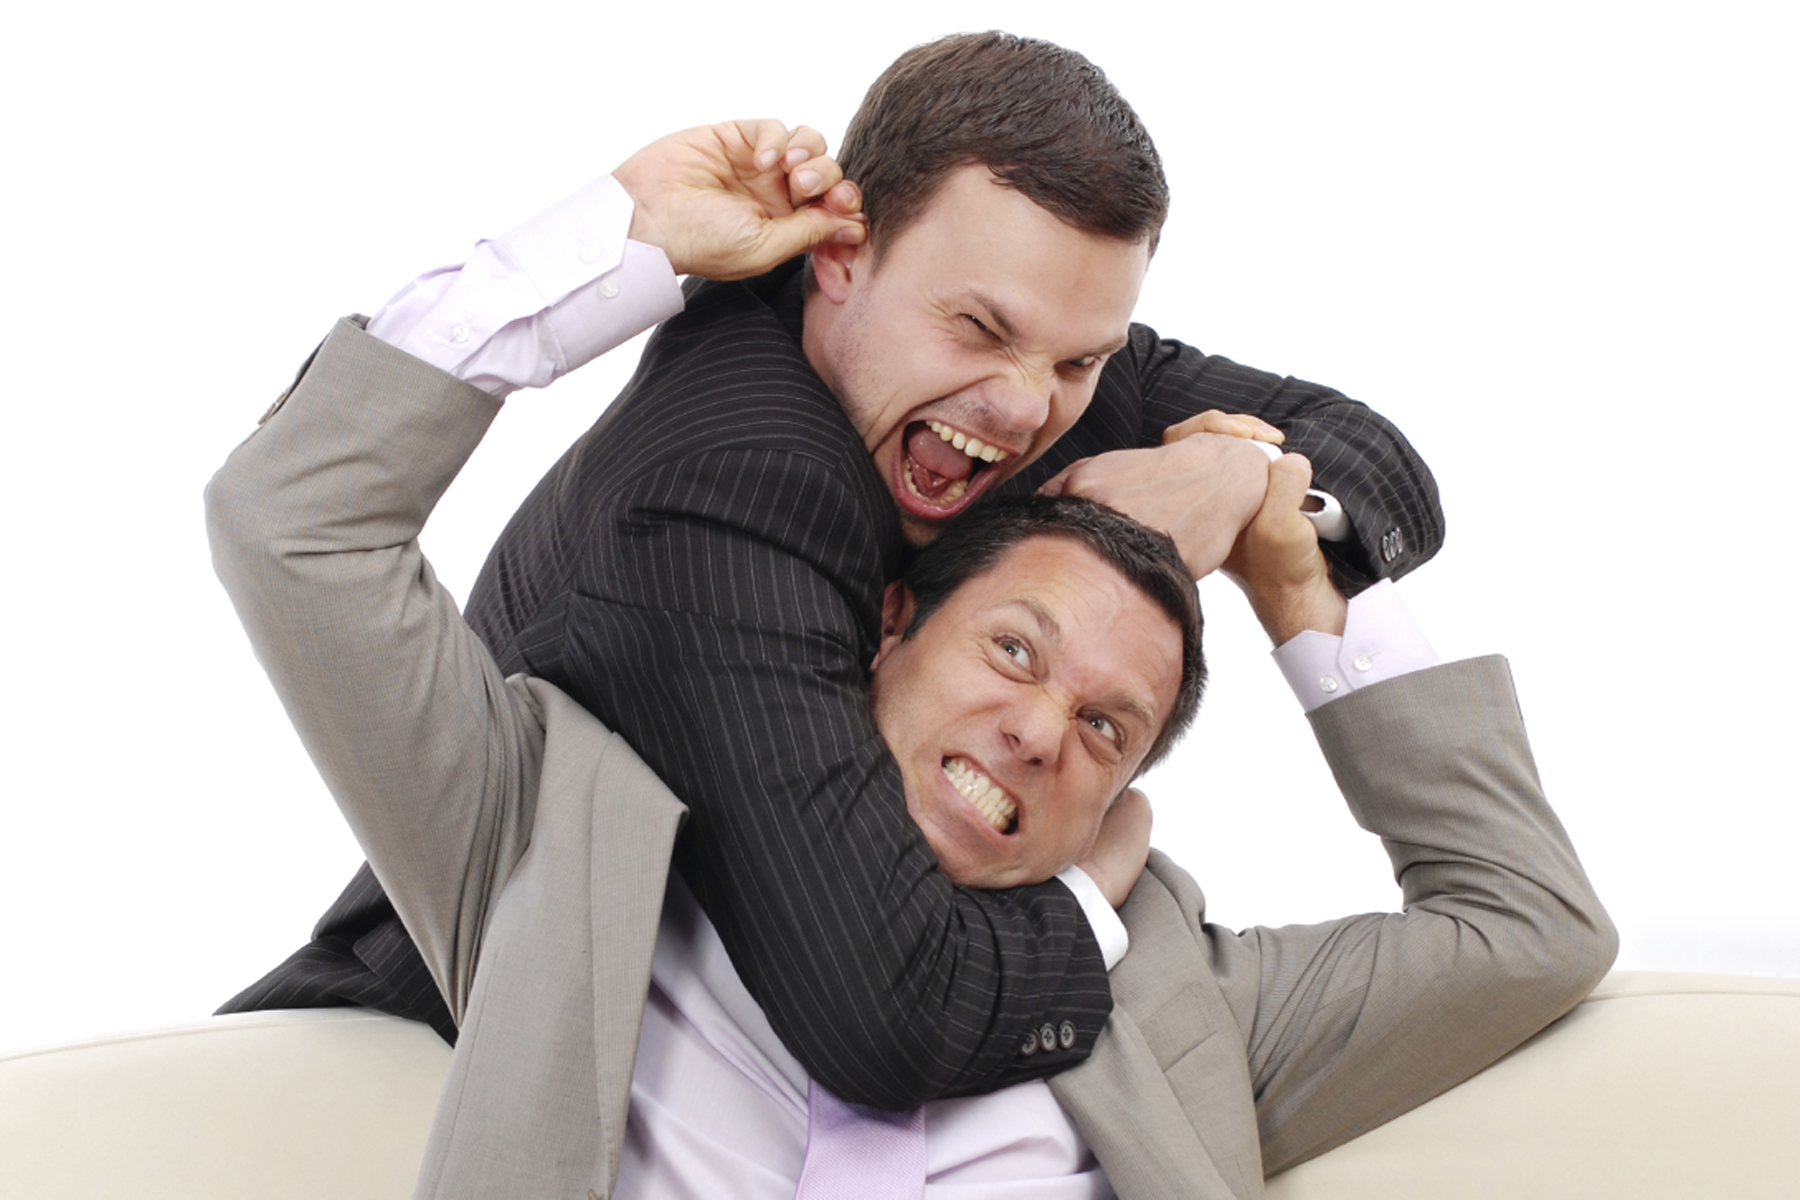 Two businessmen fighting on a couch in front of a laptop